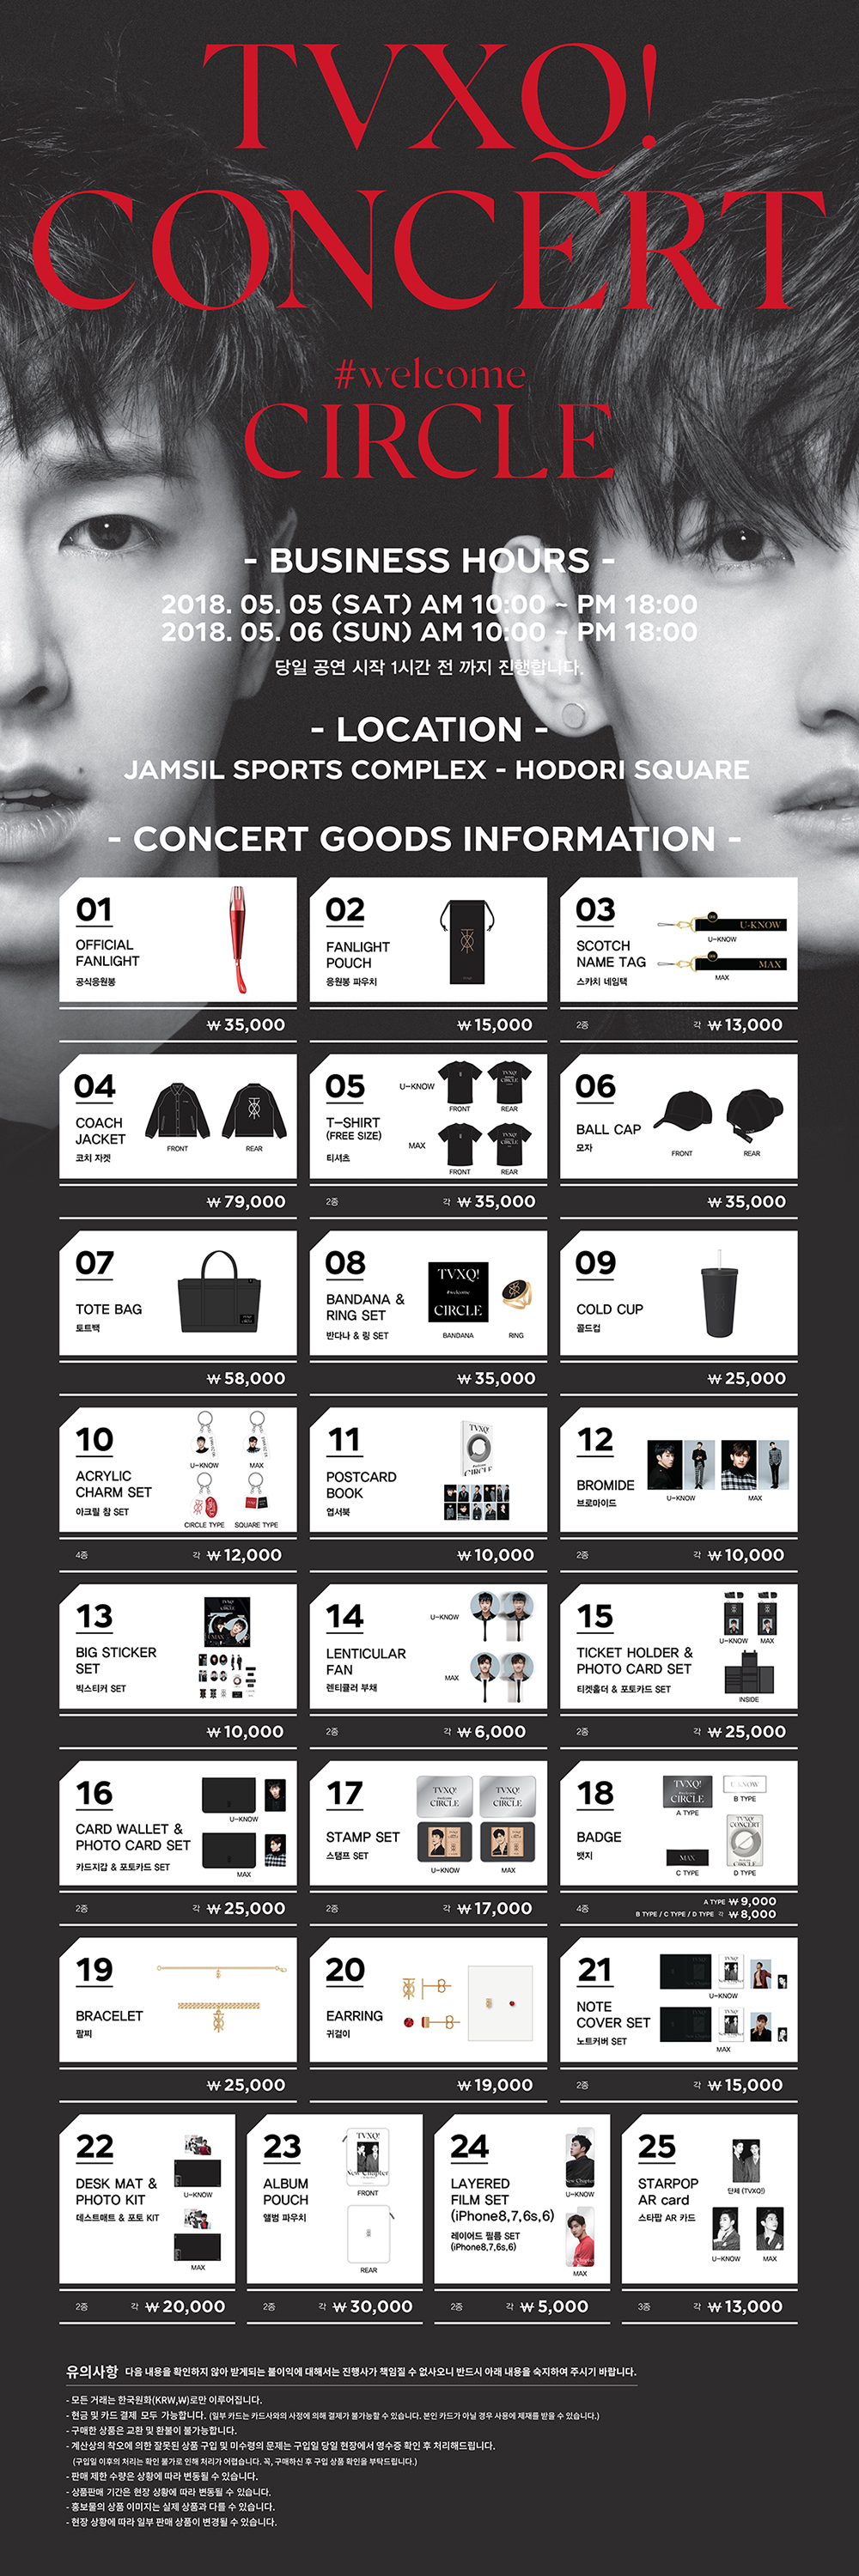 TVXQ! CONCERT – CIRCLE – #welcome | All About Cassiopeia